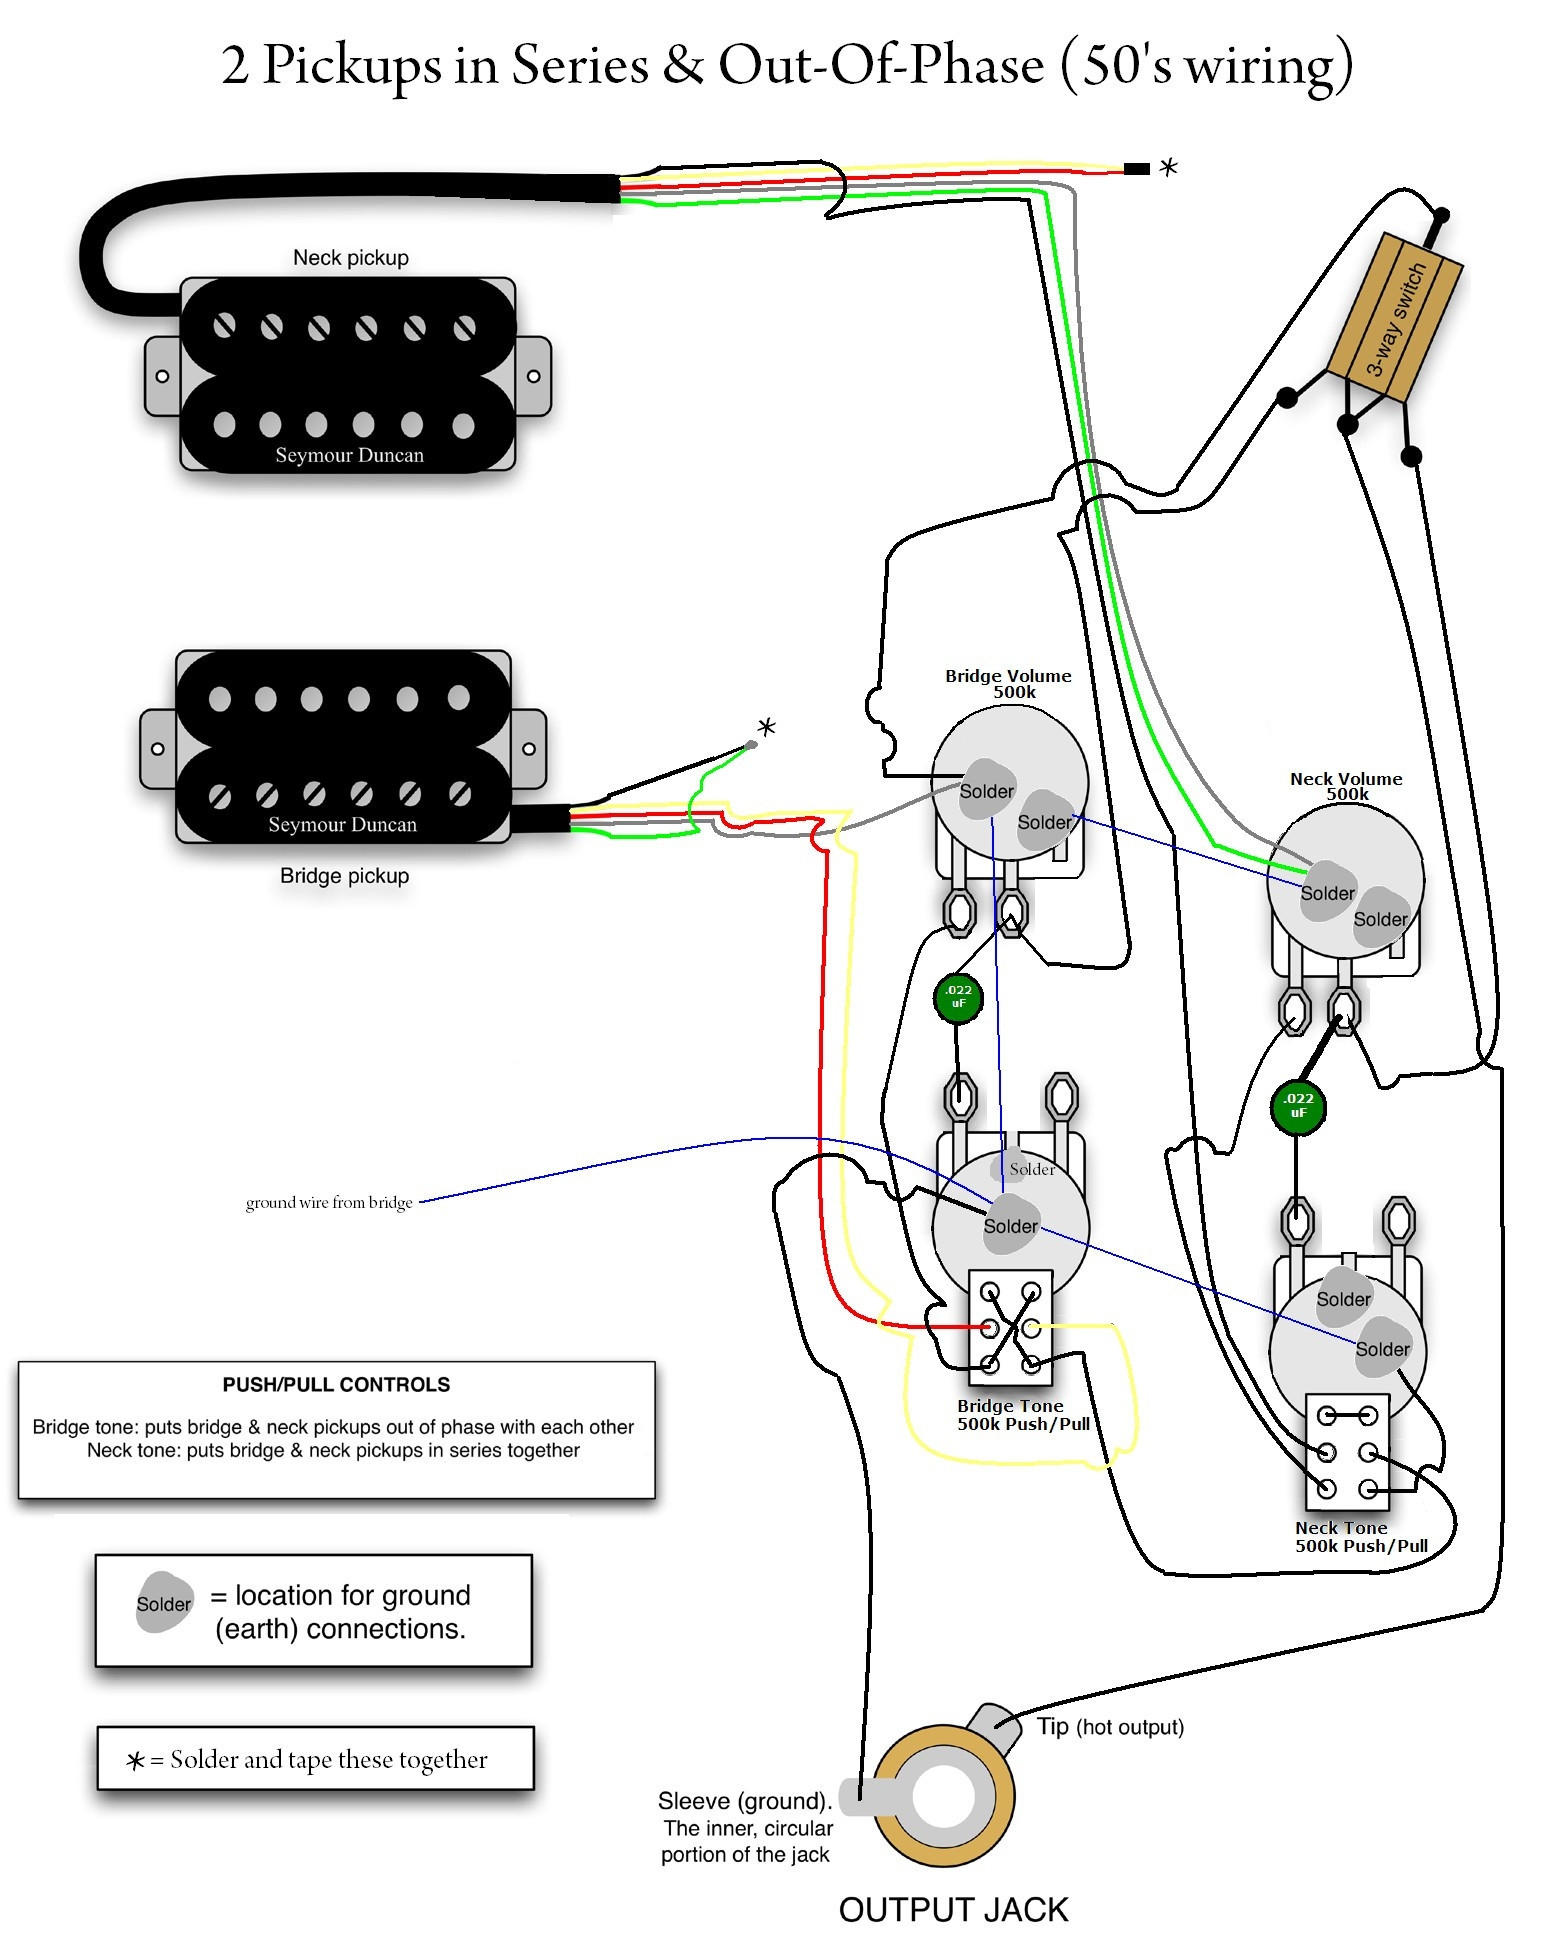 wiring diagram for vintage 5039s phase wiring diagram user fender wiring gibson vintage diagram circuit wiring diagrams favorites gibson three pickup wiring wiring diagram database